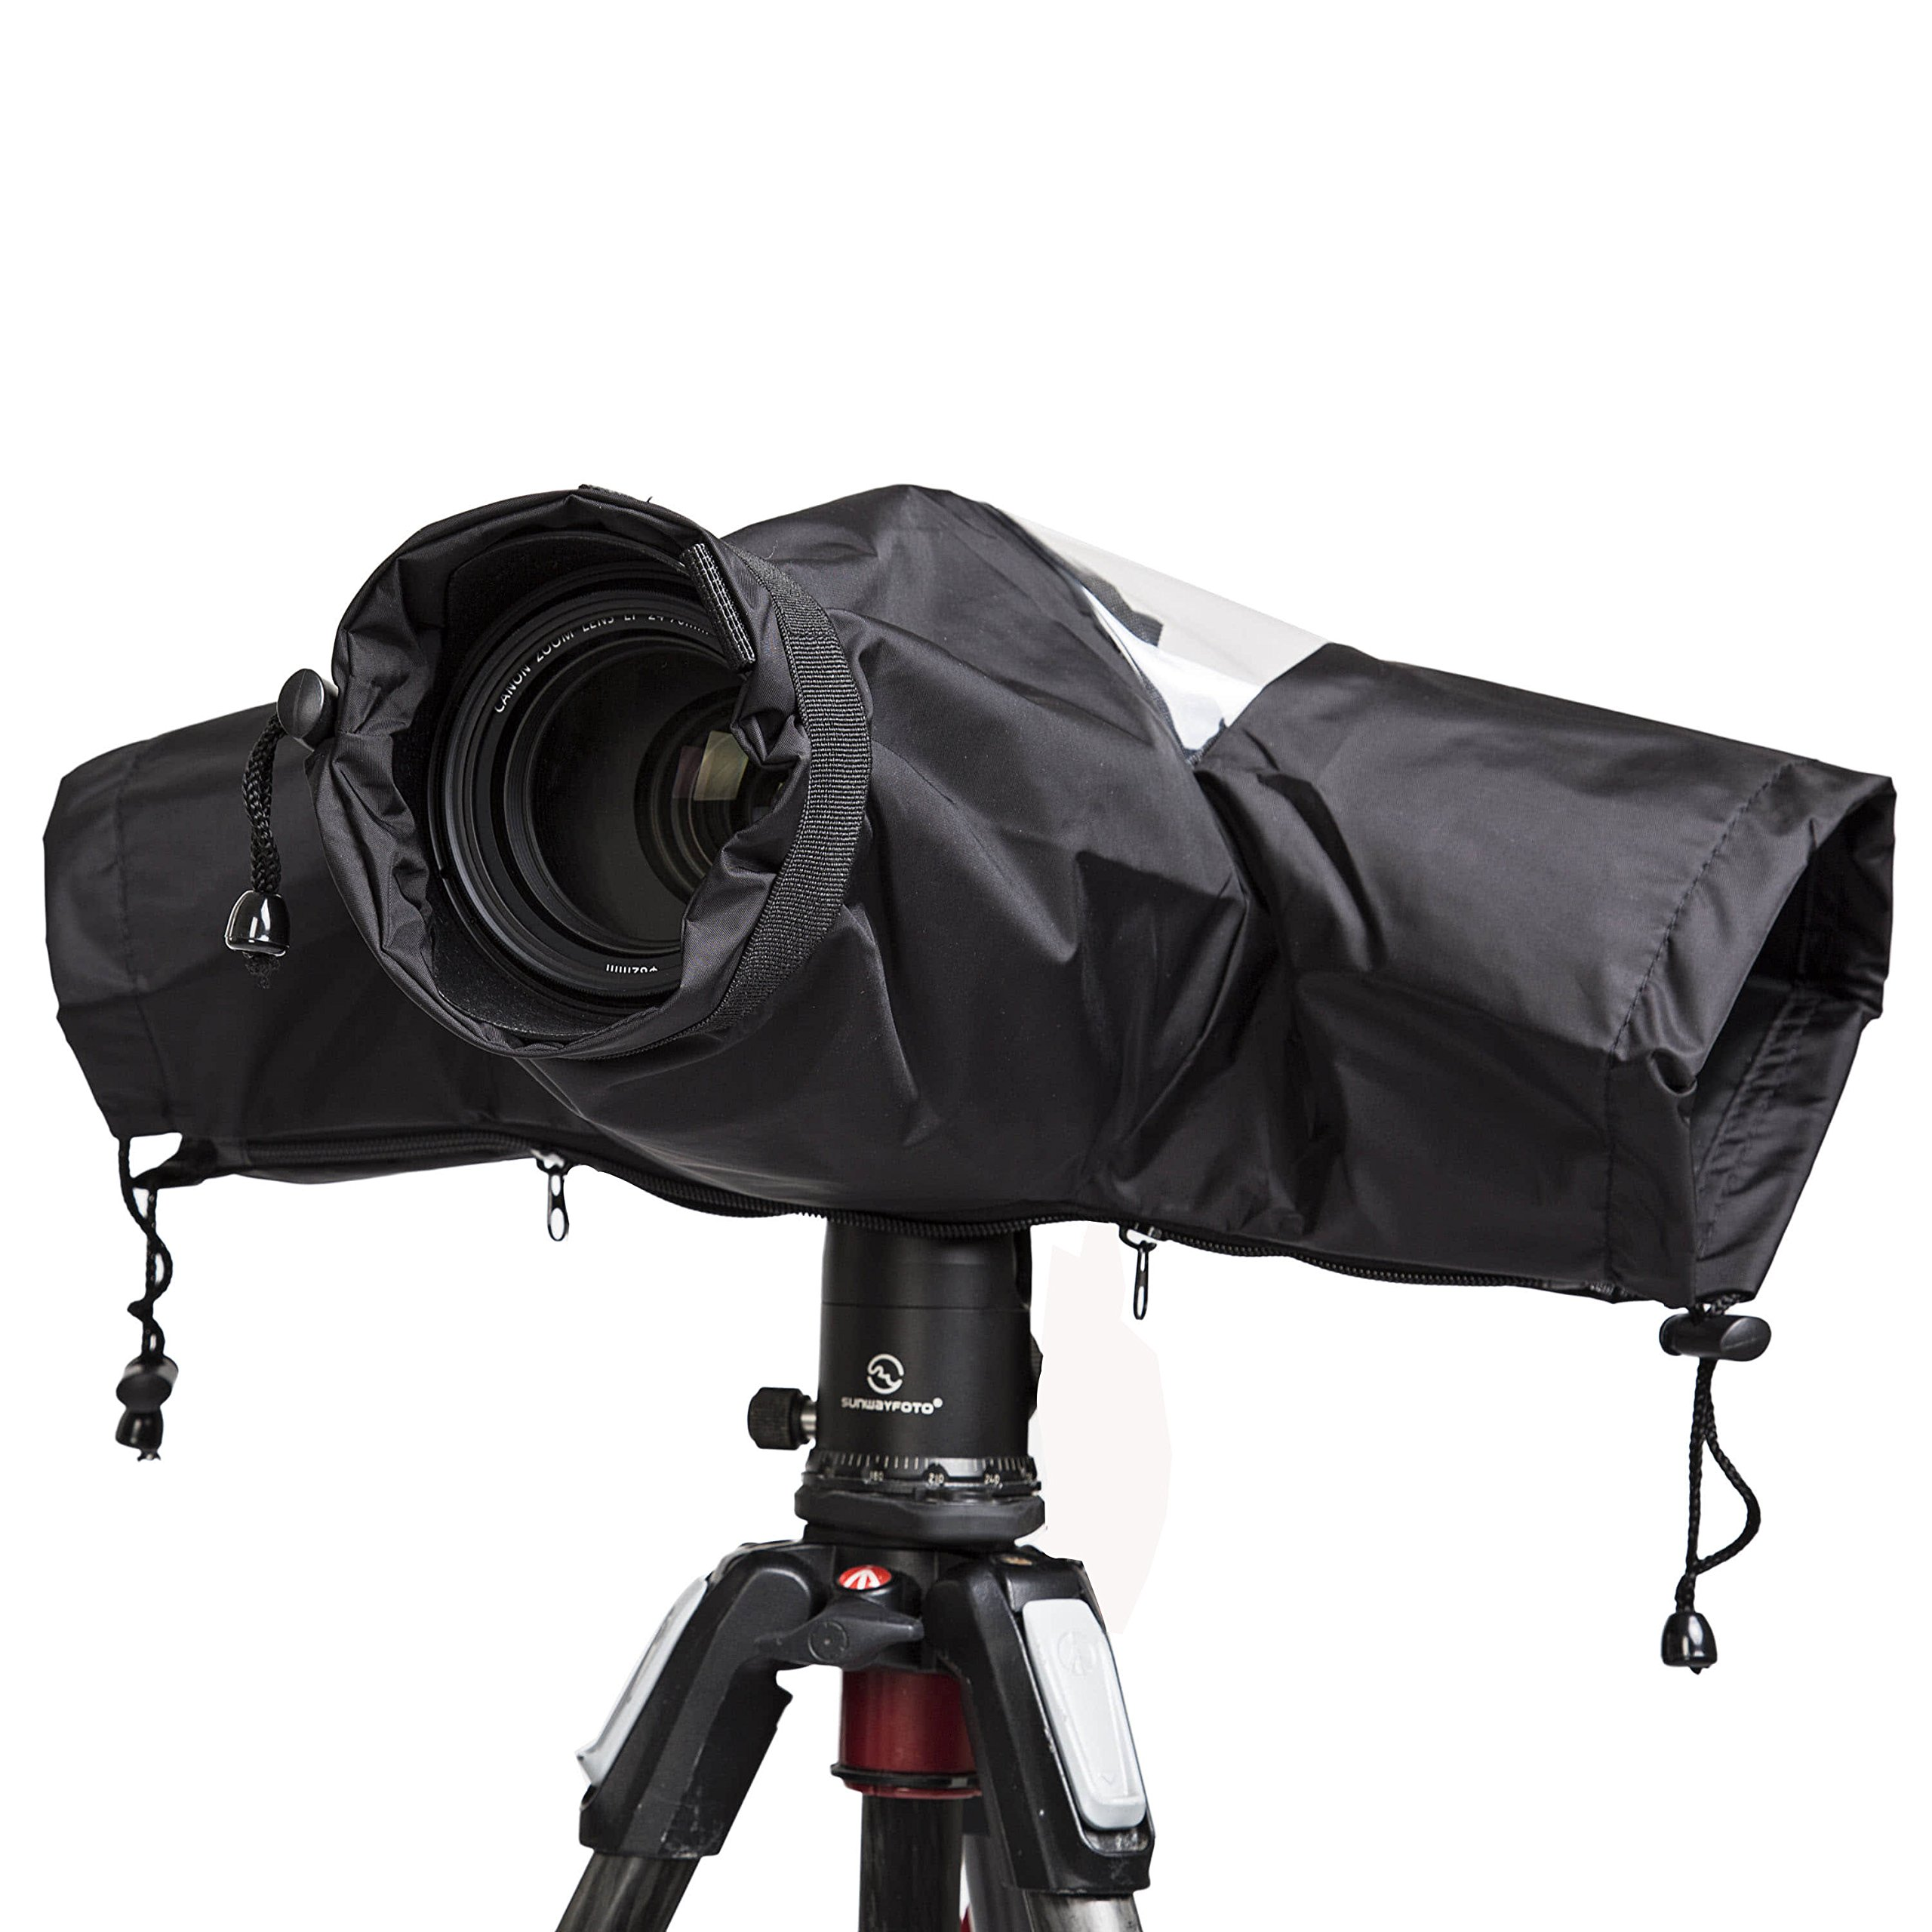 G-raphy Professional Waterproof DSLR Camera Rain Cover for Digital SLR Cameras by G-raphy